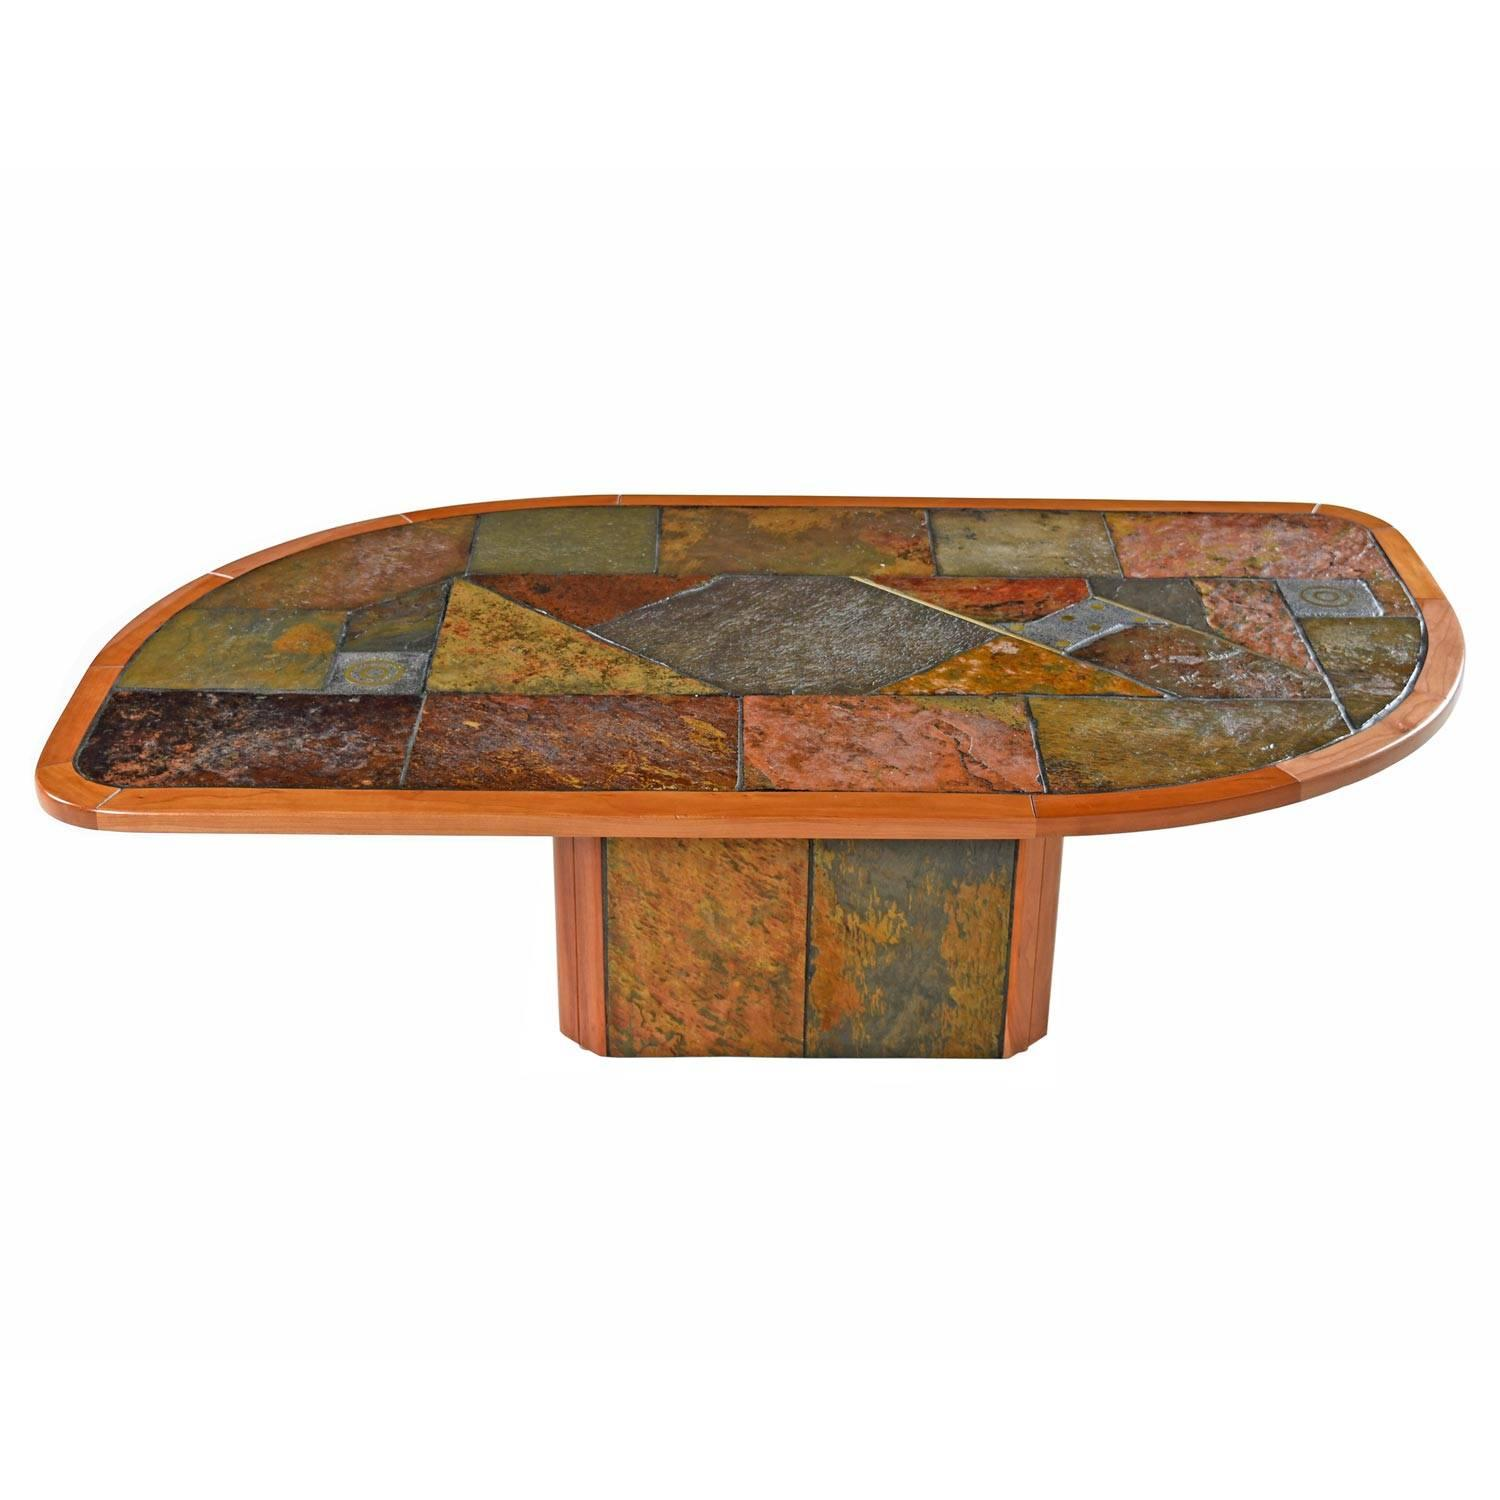 Paul Kingma Style Brutalist Pedestal Coffee Table By Slate Craft Ltd. S.  Africa For